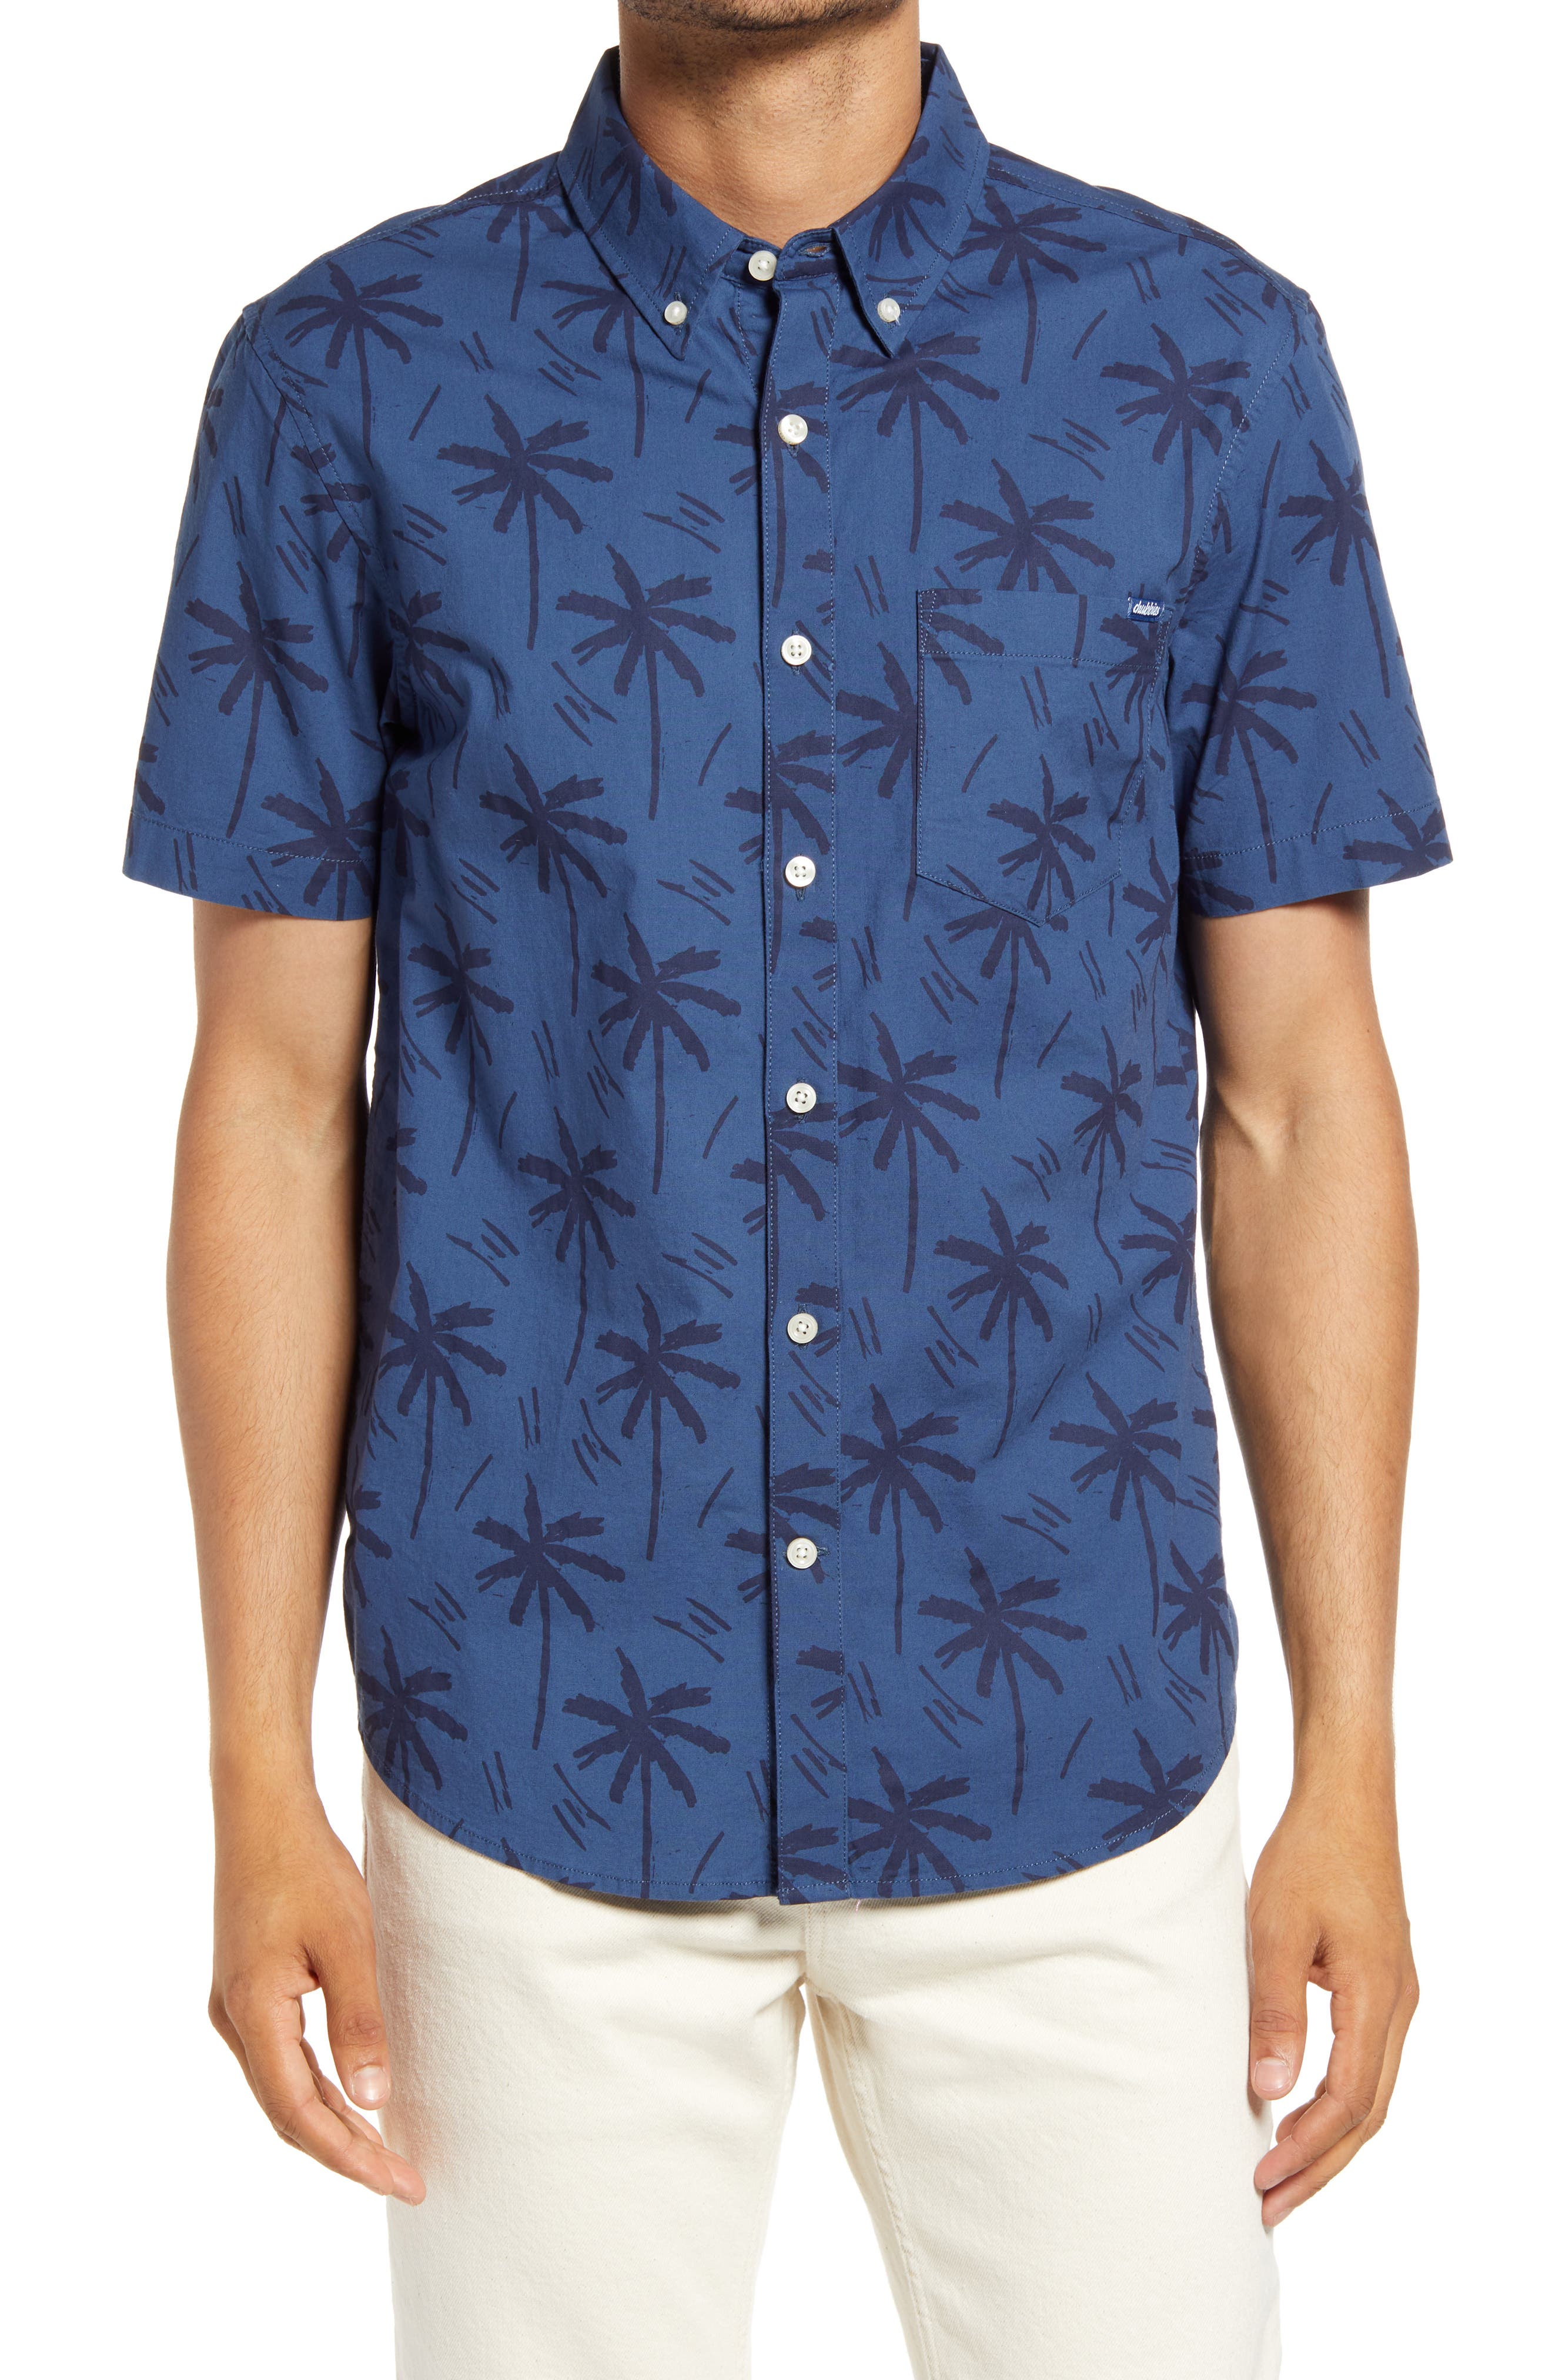 The Smooth Operator Short Sleeve Button-Down Shirt